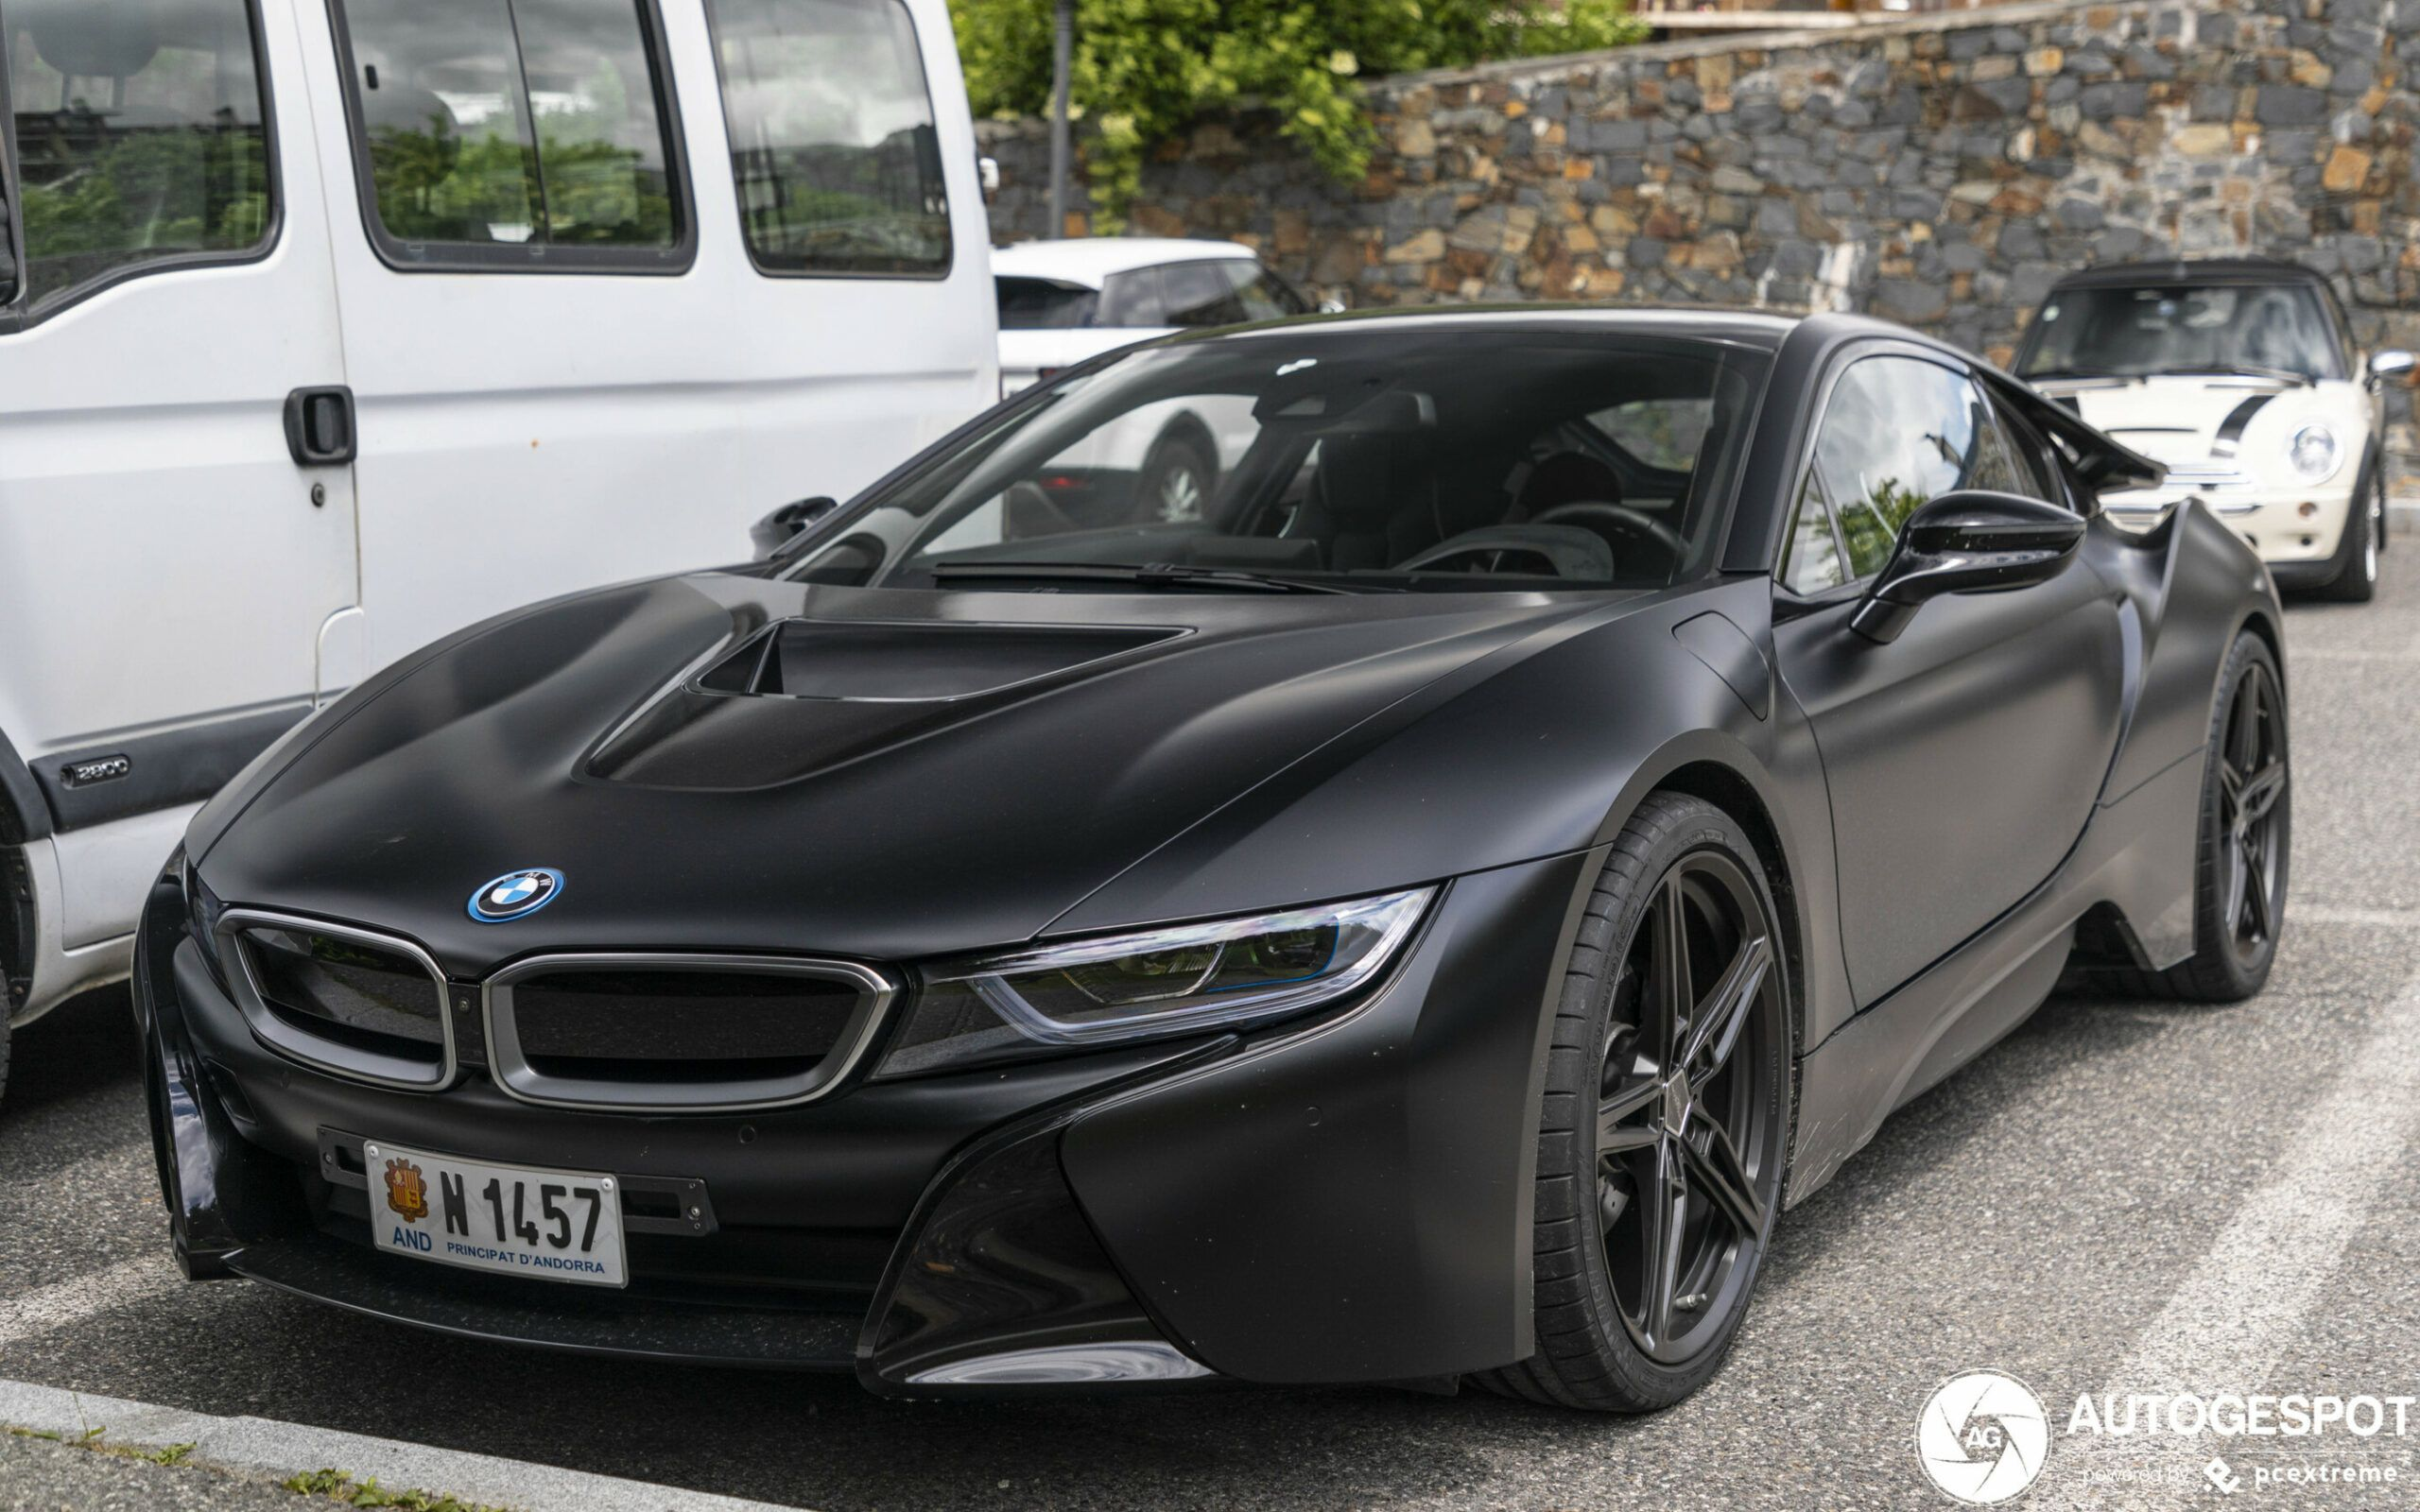 2020 Bmw I8 In 2020 Bmw Black Bmw Dream Cars Bmw